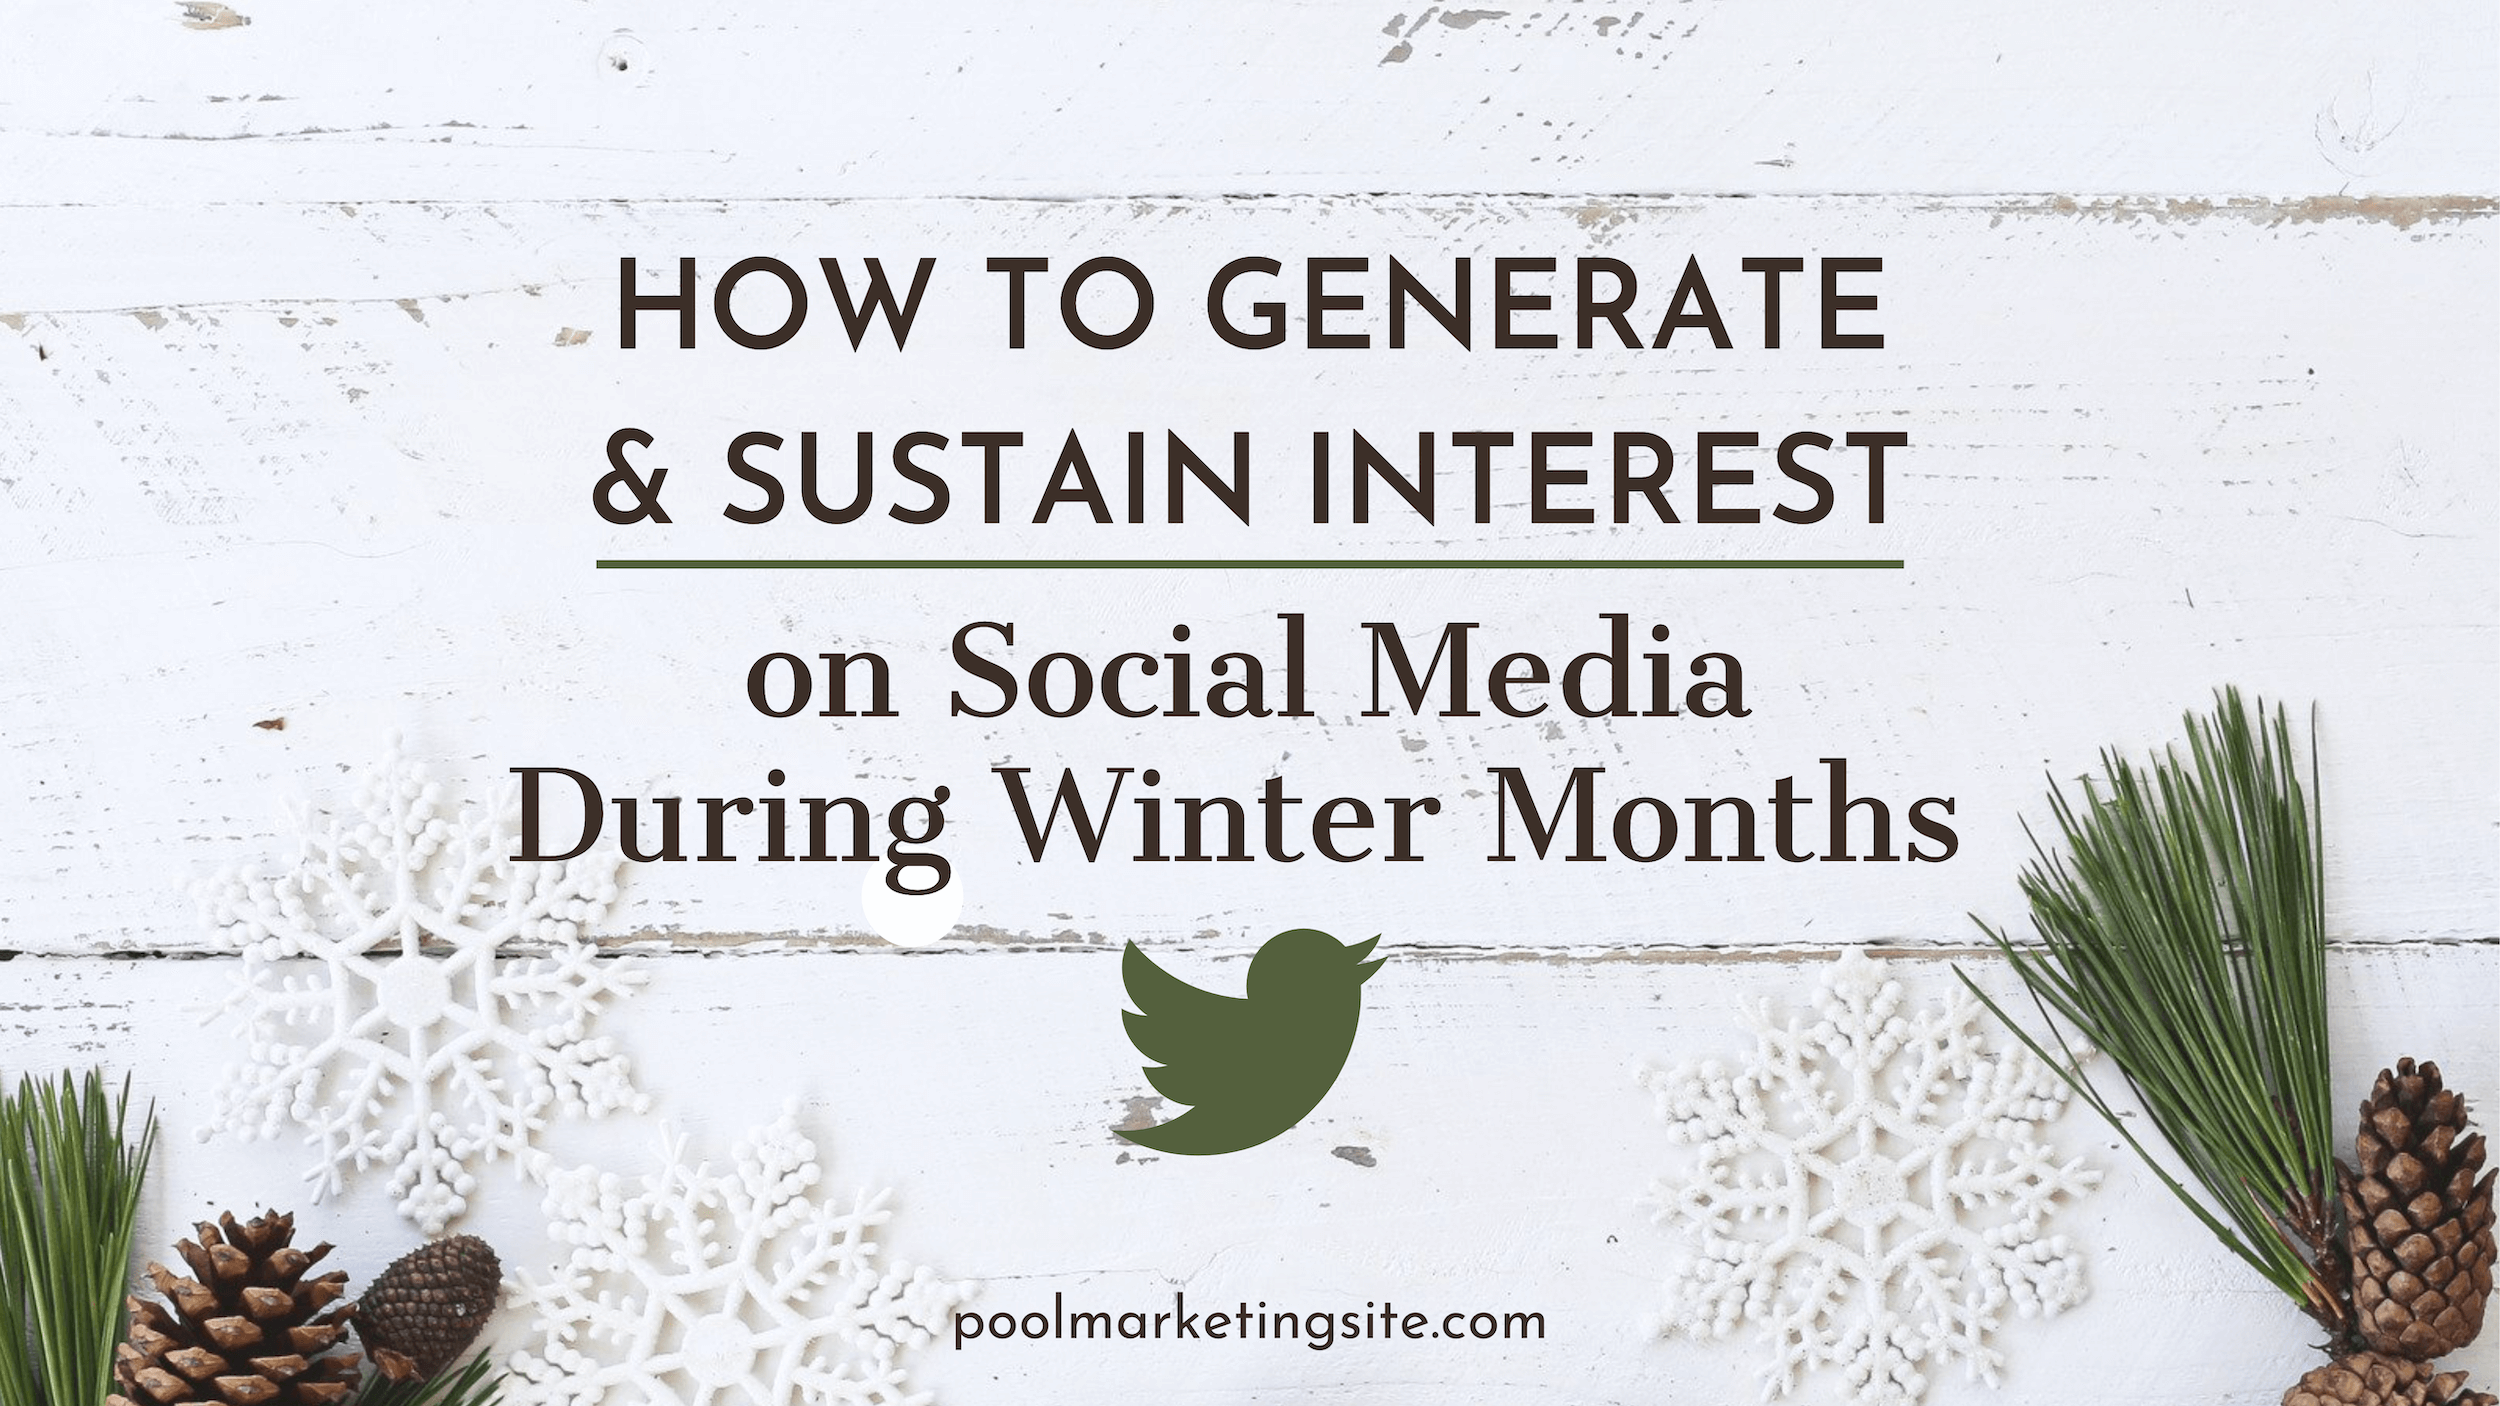 How to Generate and Sustain Interest on Social Media During Winter Months